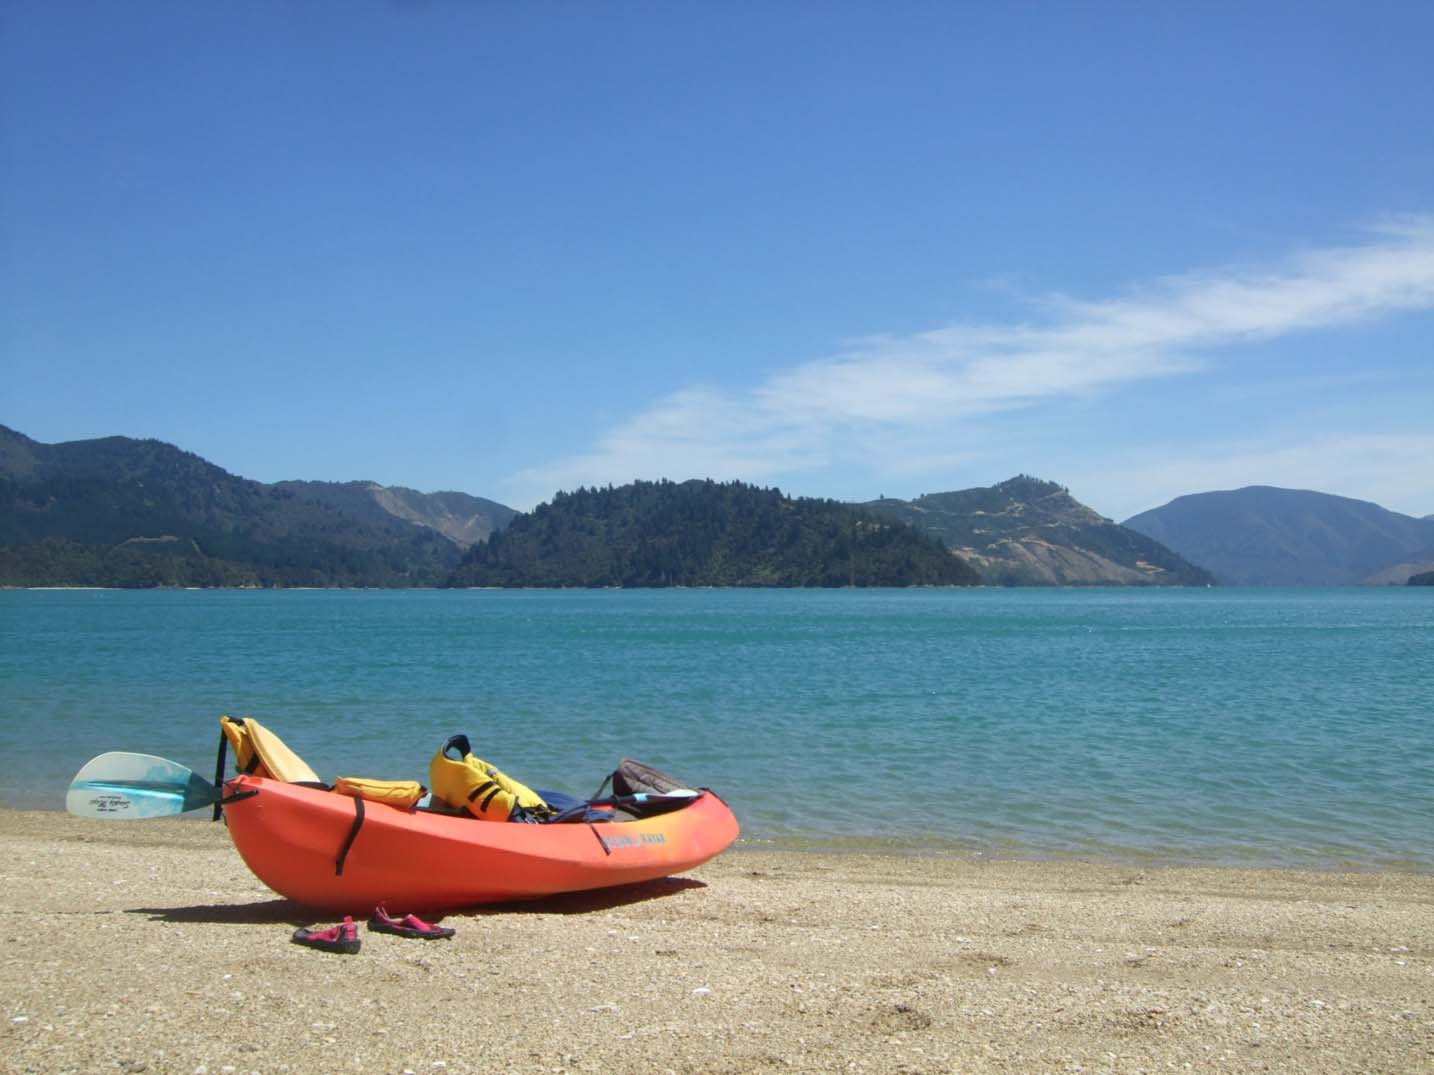 Kayak on a beach in the Marlborough Sounds, New Zealand